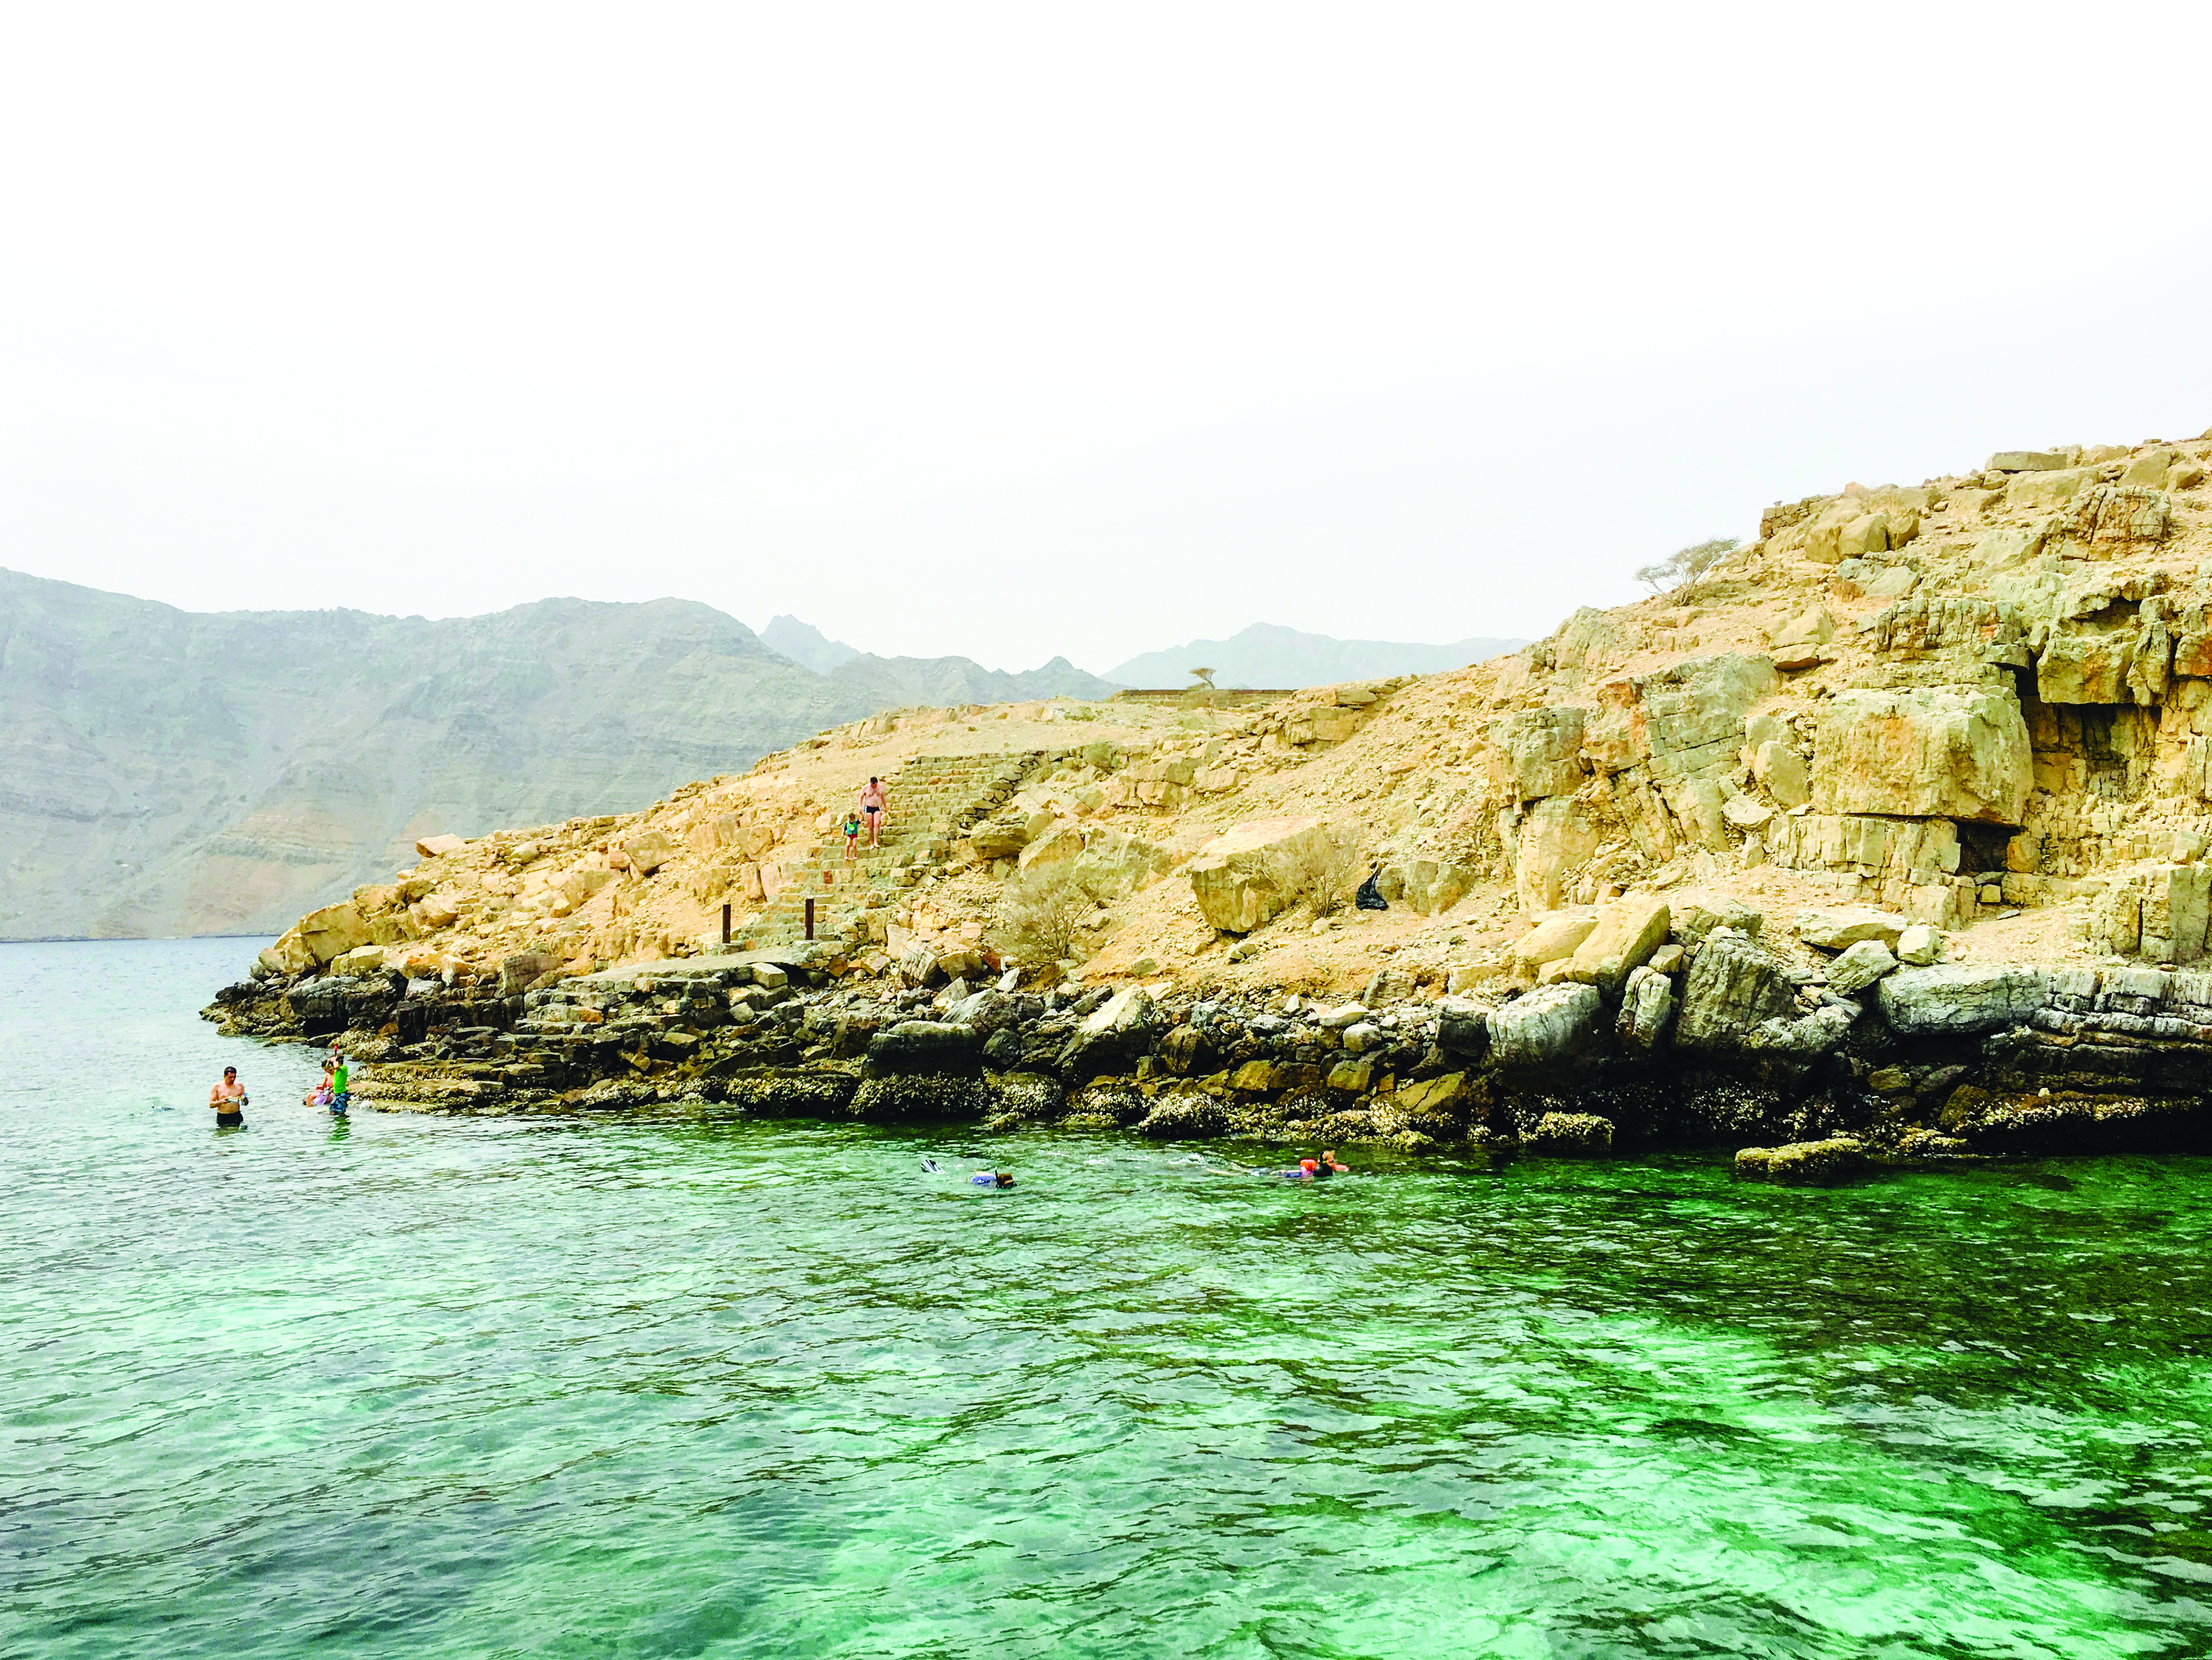 Oman Travel: A visit to the Telegraph Island